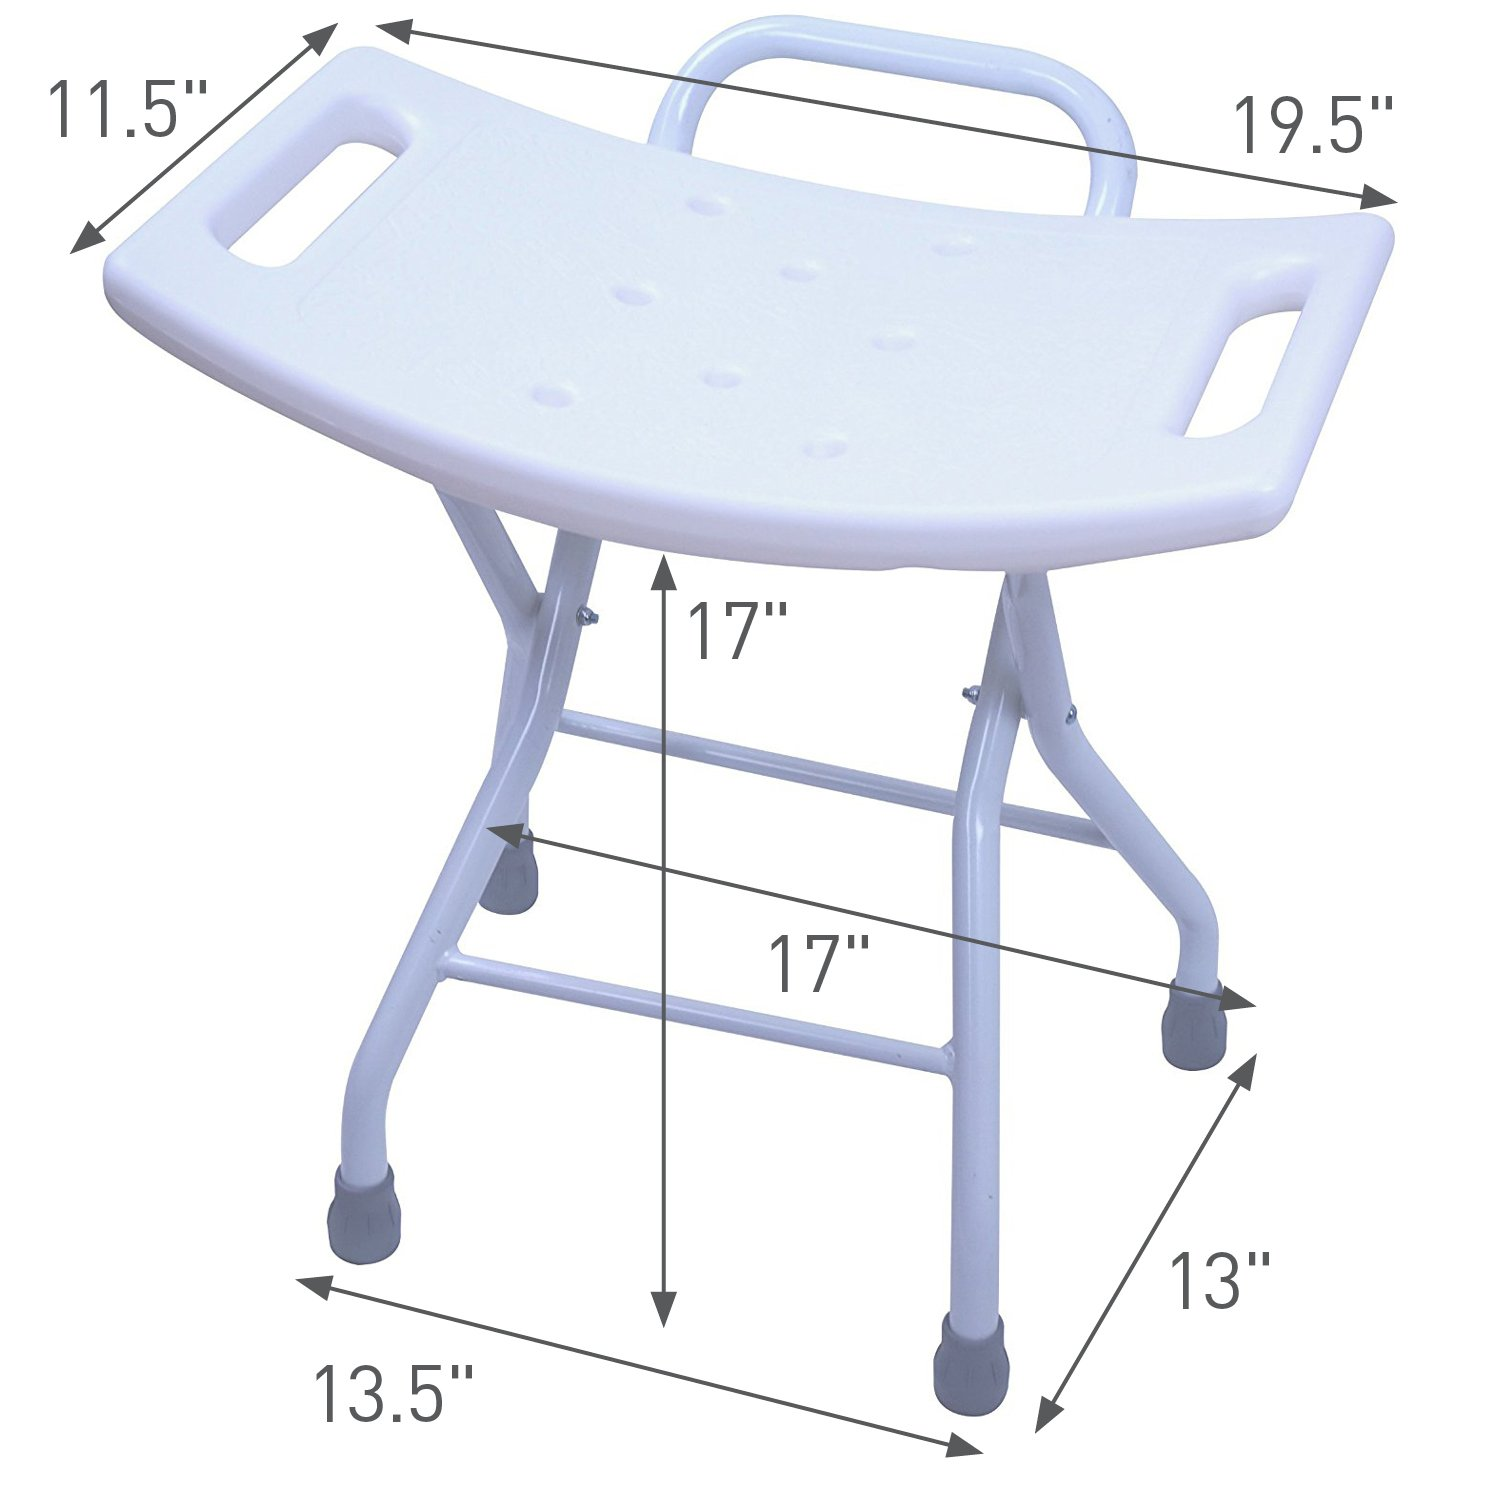 Terrific Folding Shower Seat Stool Portable Assist Bath Bench Chair With Hand Grab For Seniors Disabled Or Home Care Comfort By Brightcare Pdpeps Interior Chair Design Pdpepsorg